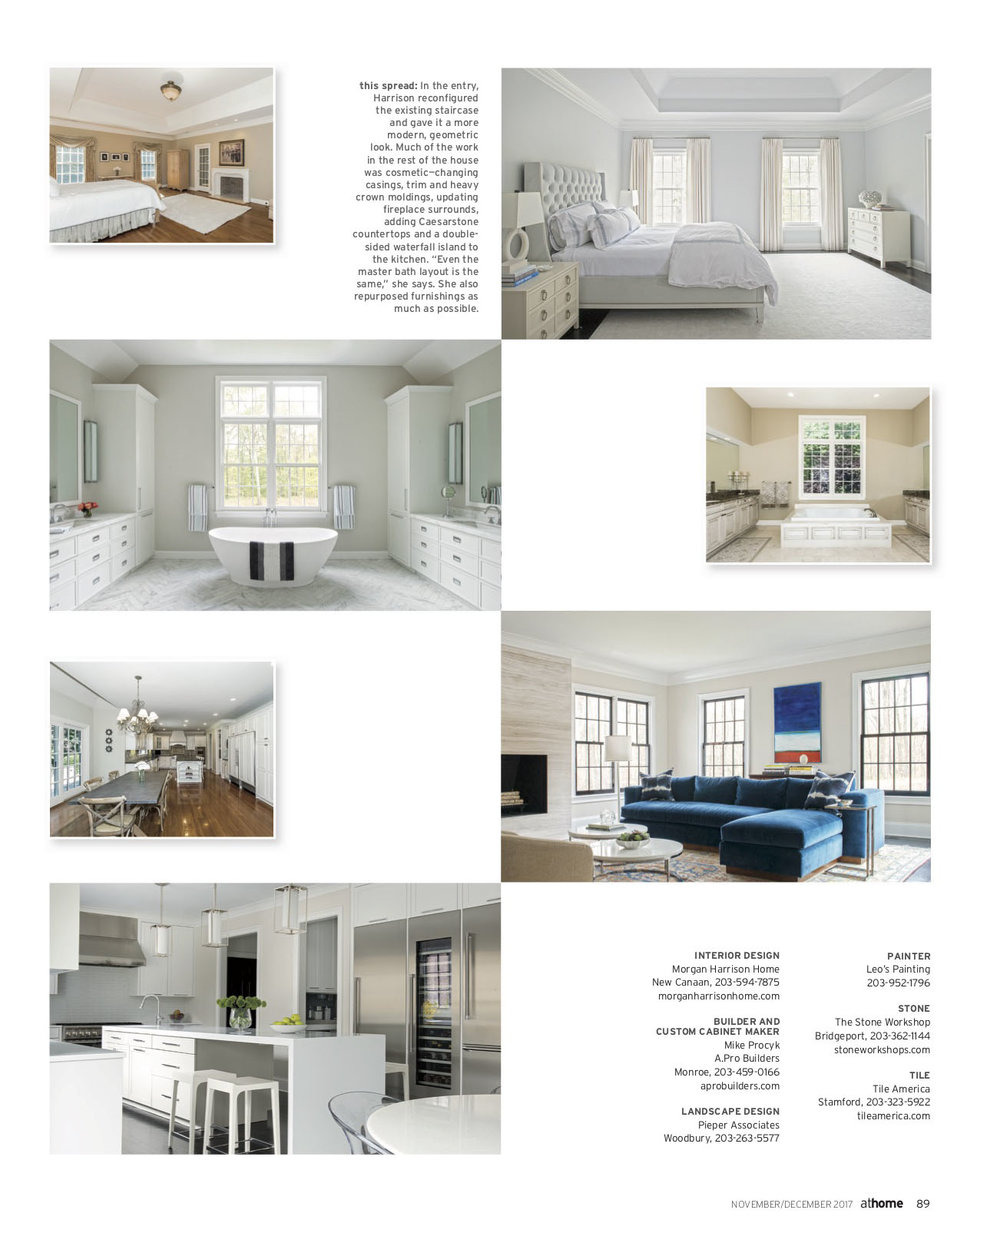 AH_MorganHarrison_Renovation SPREAD2.jpg